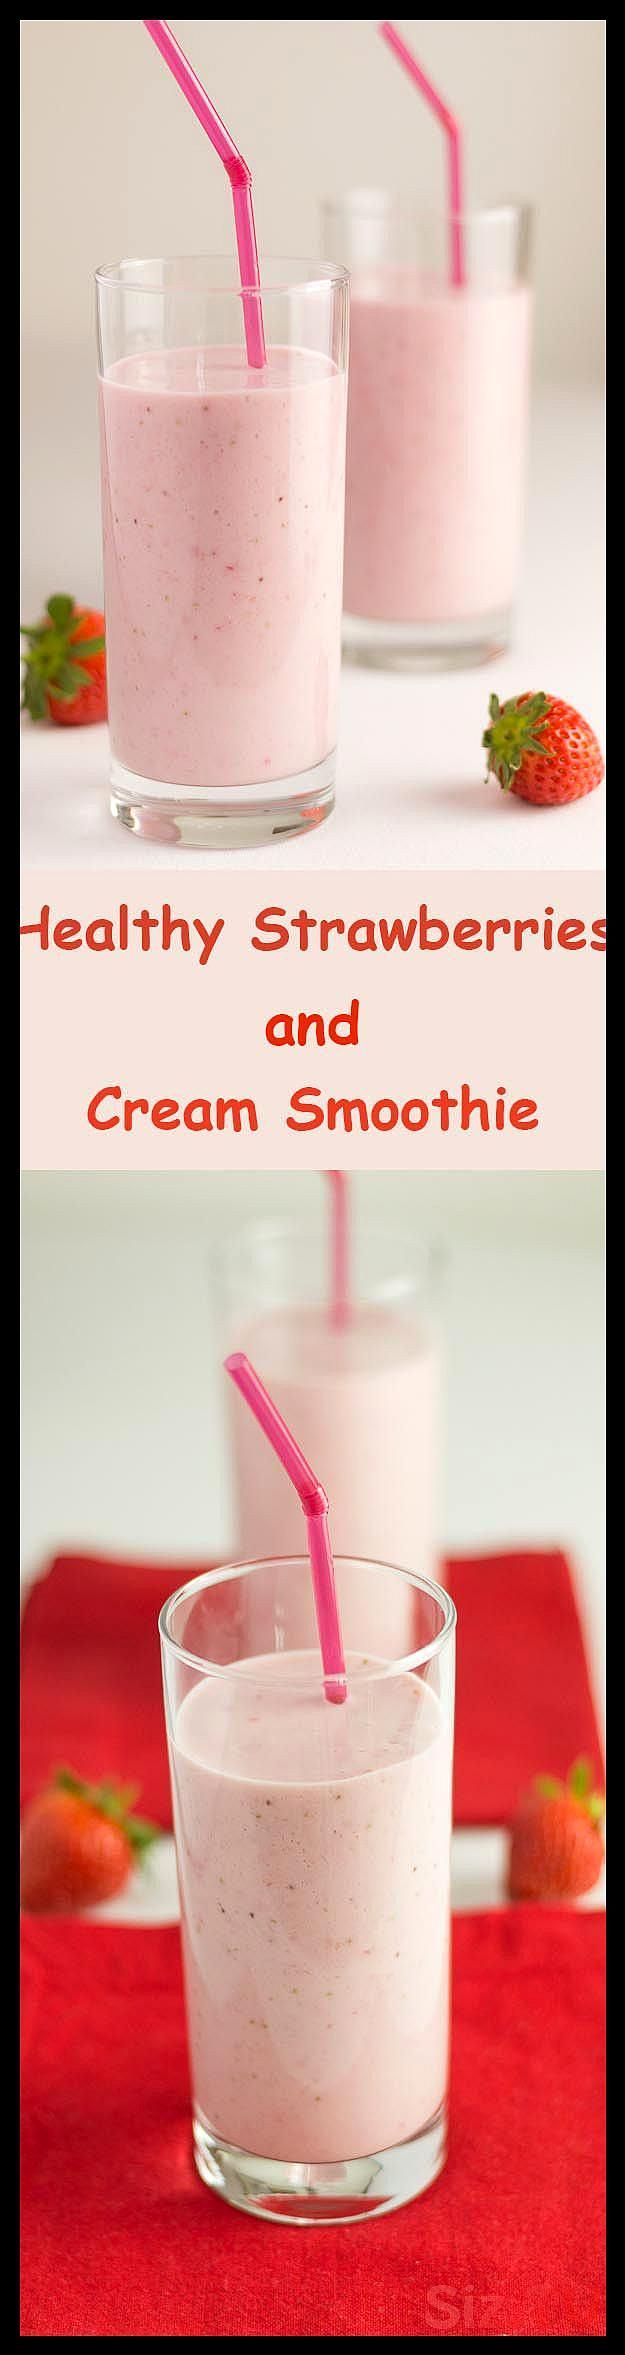 Healthy Strawberries and Cream Smoothie Healthy Strawberries and Cream Smoothie Super Healthy Kids Save Images Super Healthy Kids A deliciously creamy smooth and naturally sweet healthy strawberries and cream smoothie  Made with no actual cream  healthykids Healthy Strawberries and Cream Smoothie Slow Cooker Recipes A deliciously creamy smooth and naturally sweet healthy strawberries and cream smoothie  Made with no actual  #cream #healthy #pregnancysmoothie #smoothie #strawberries #healthystraw #healthystrawberrybananasmoothie